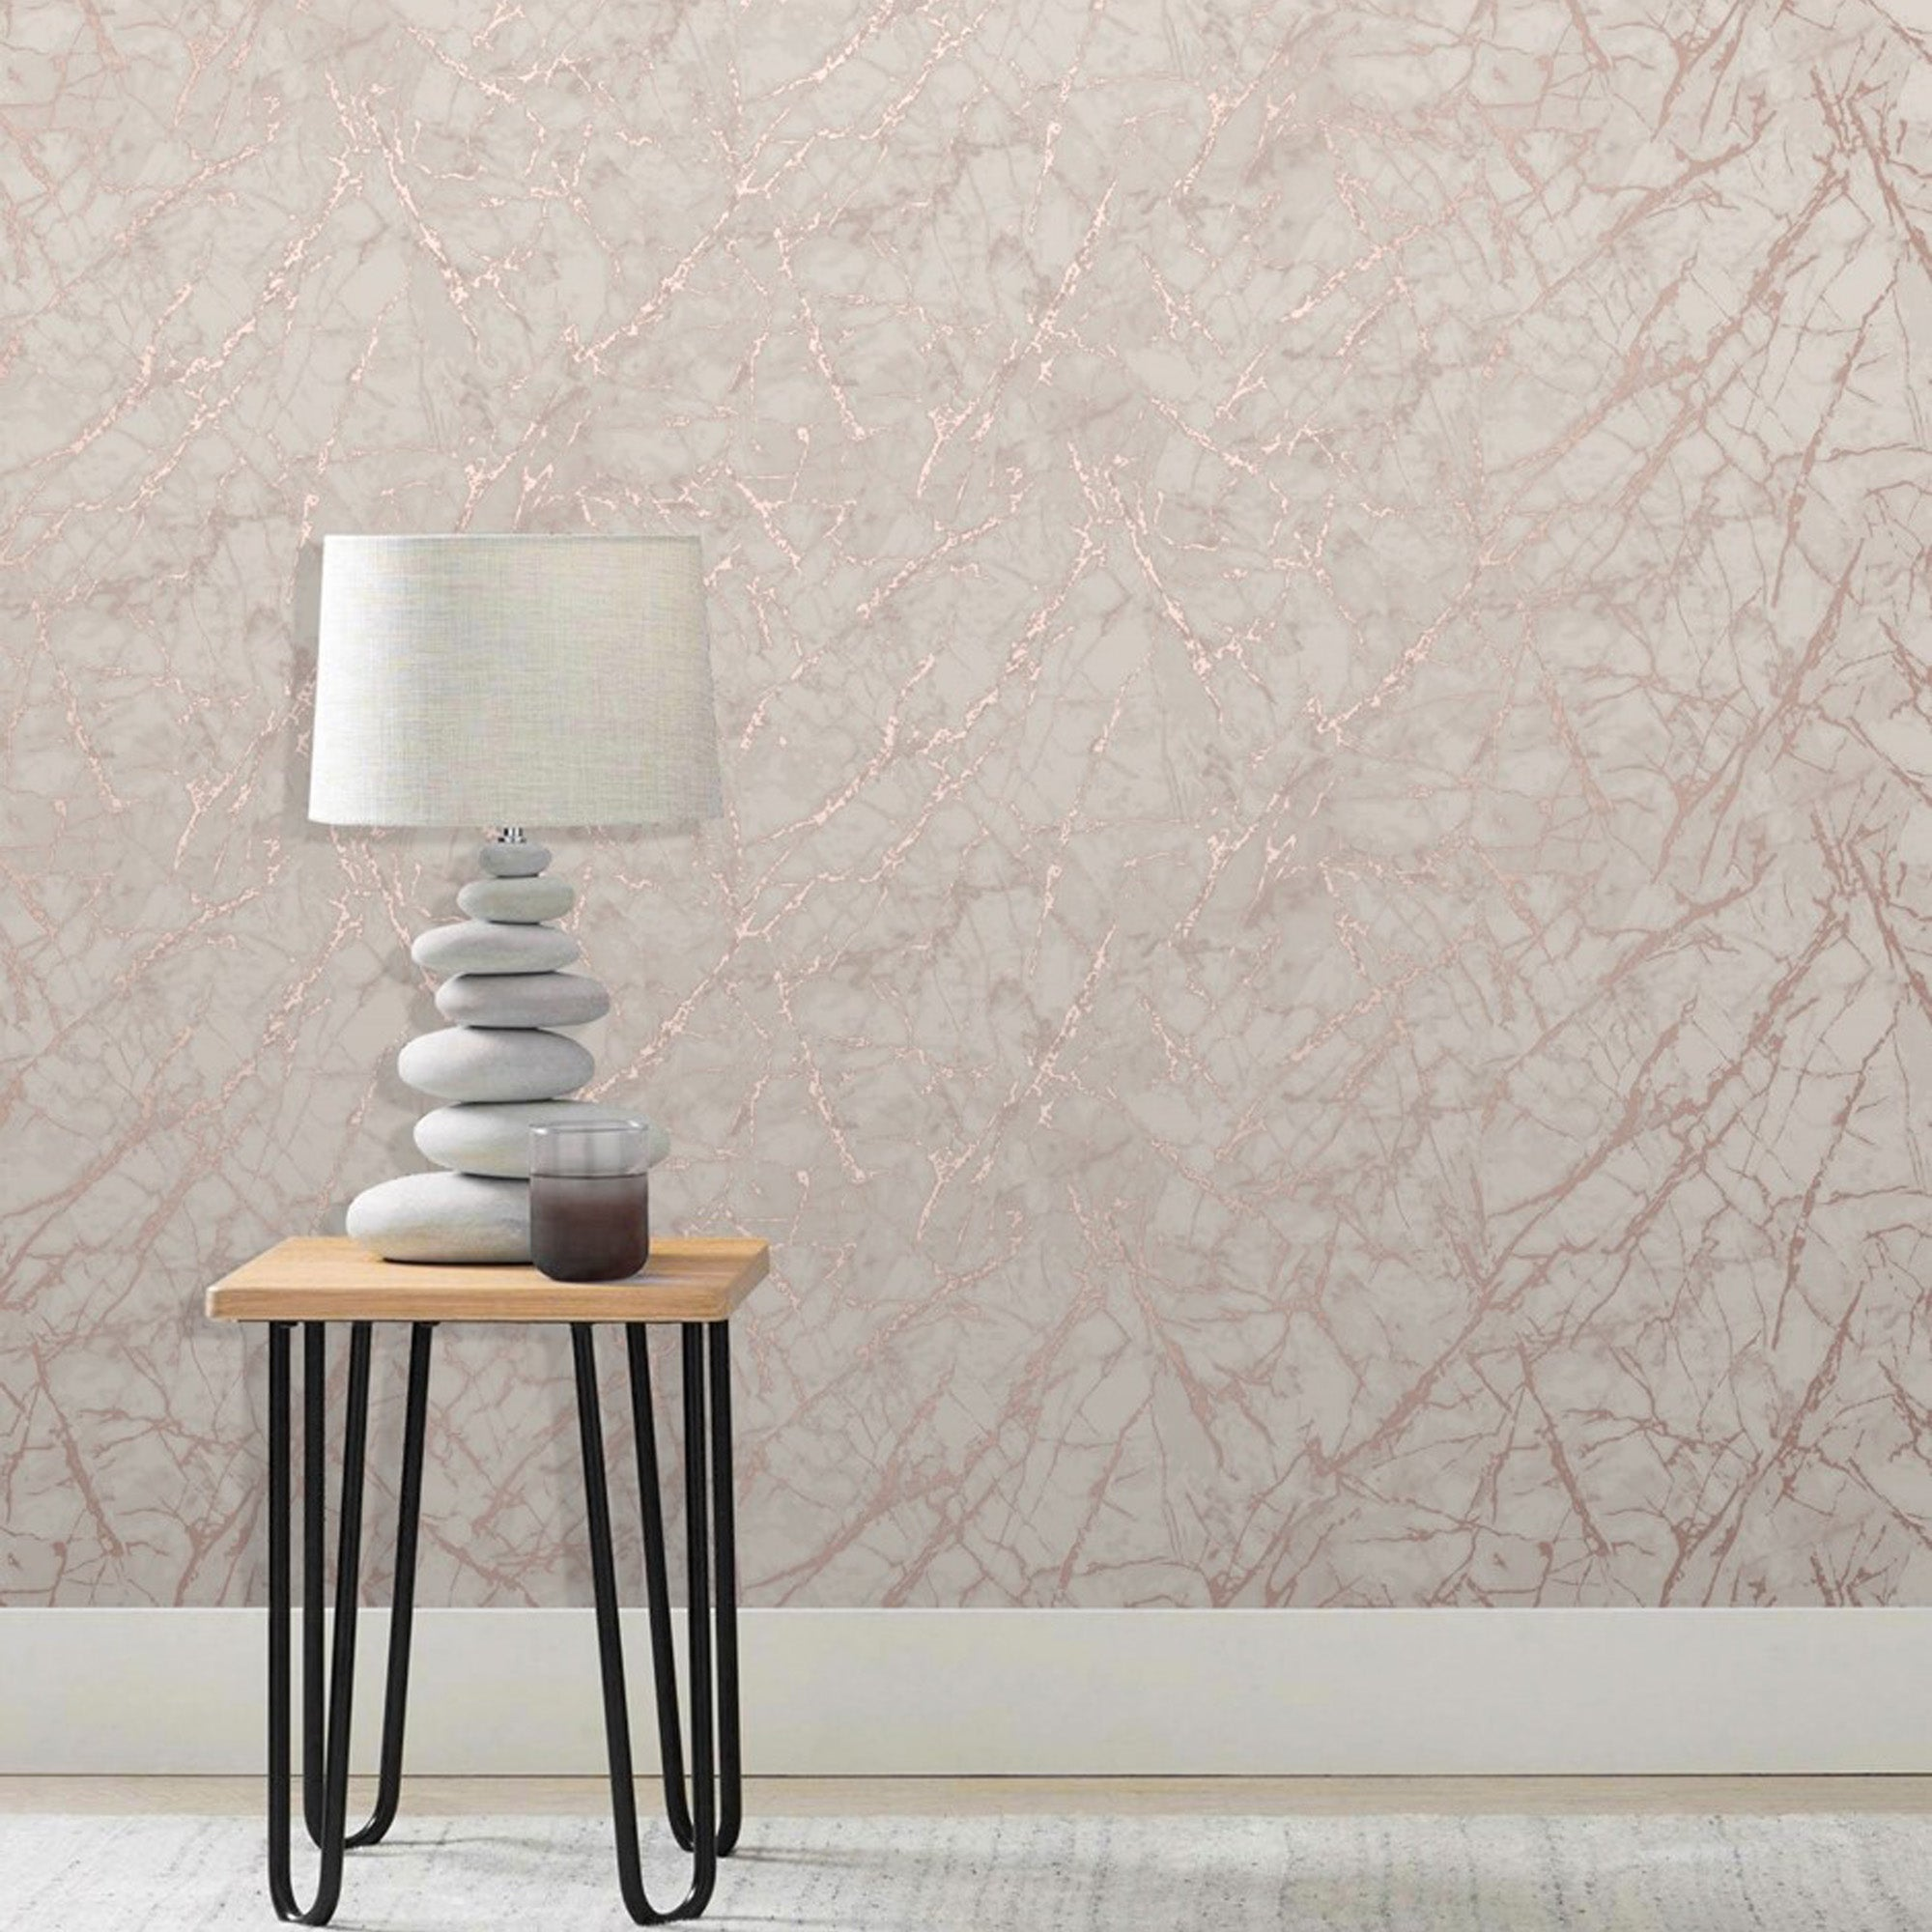 Top Wallpaper Marble Cream - Marble_rose_gold_Room_Shot_squared_FD42268  Best Photo Reference_889743.jpg?v\u003d1518561867